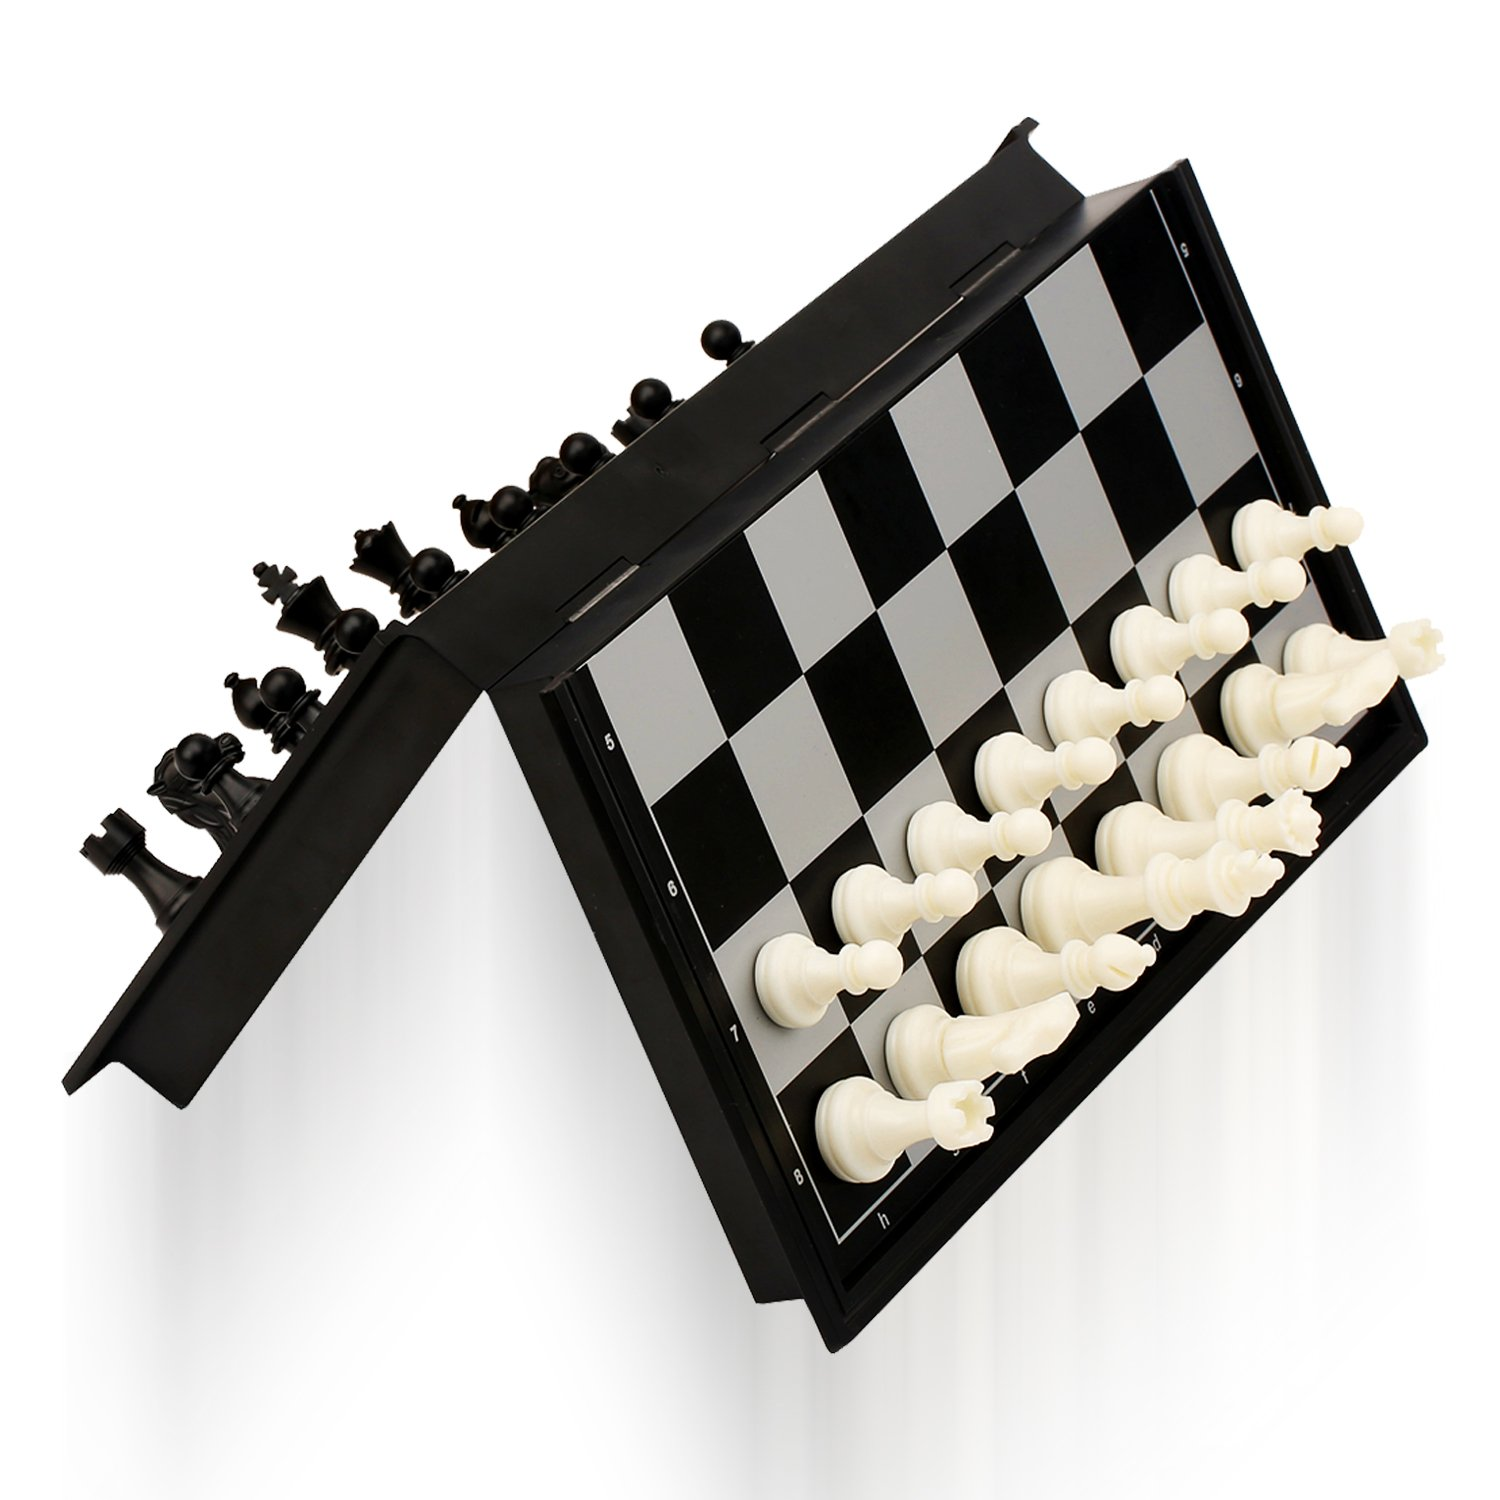 QuadPro Magnetic Travel Chess Set with Folding Chess Board Educational Toys for Kids and Adults by QuadPro